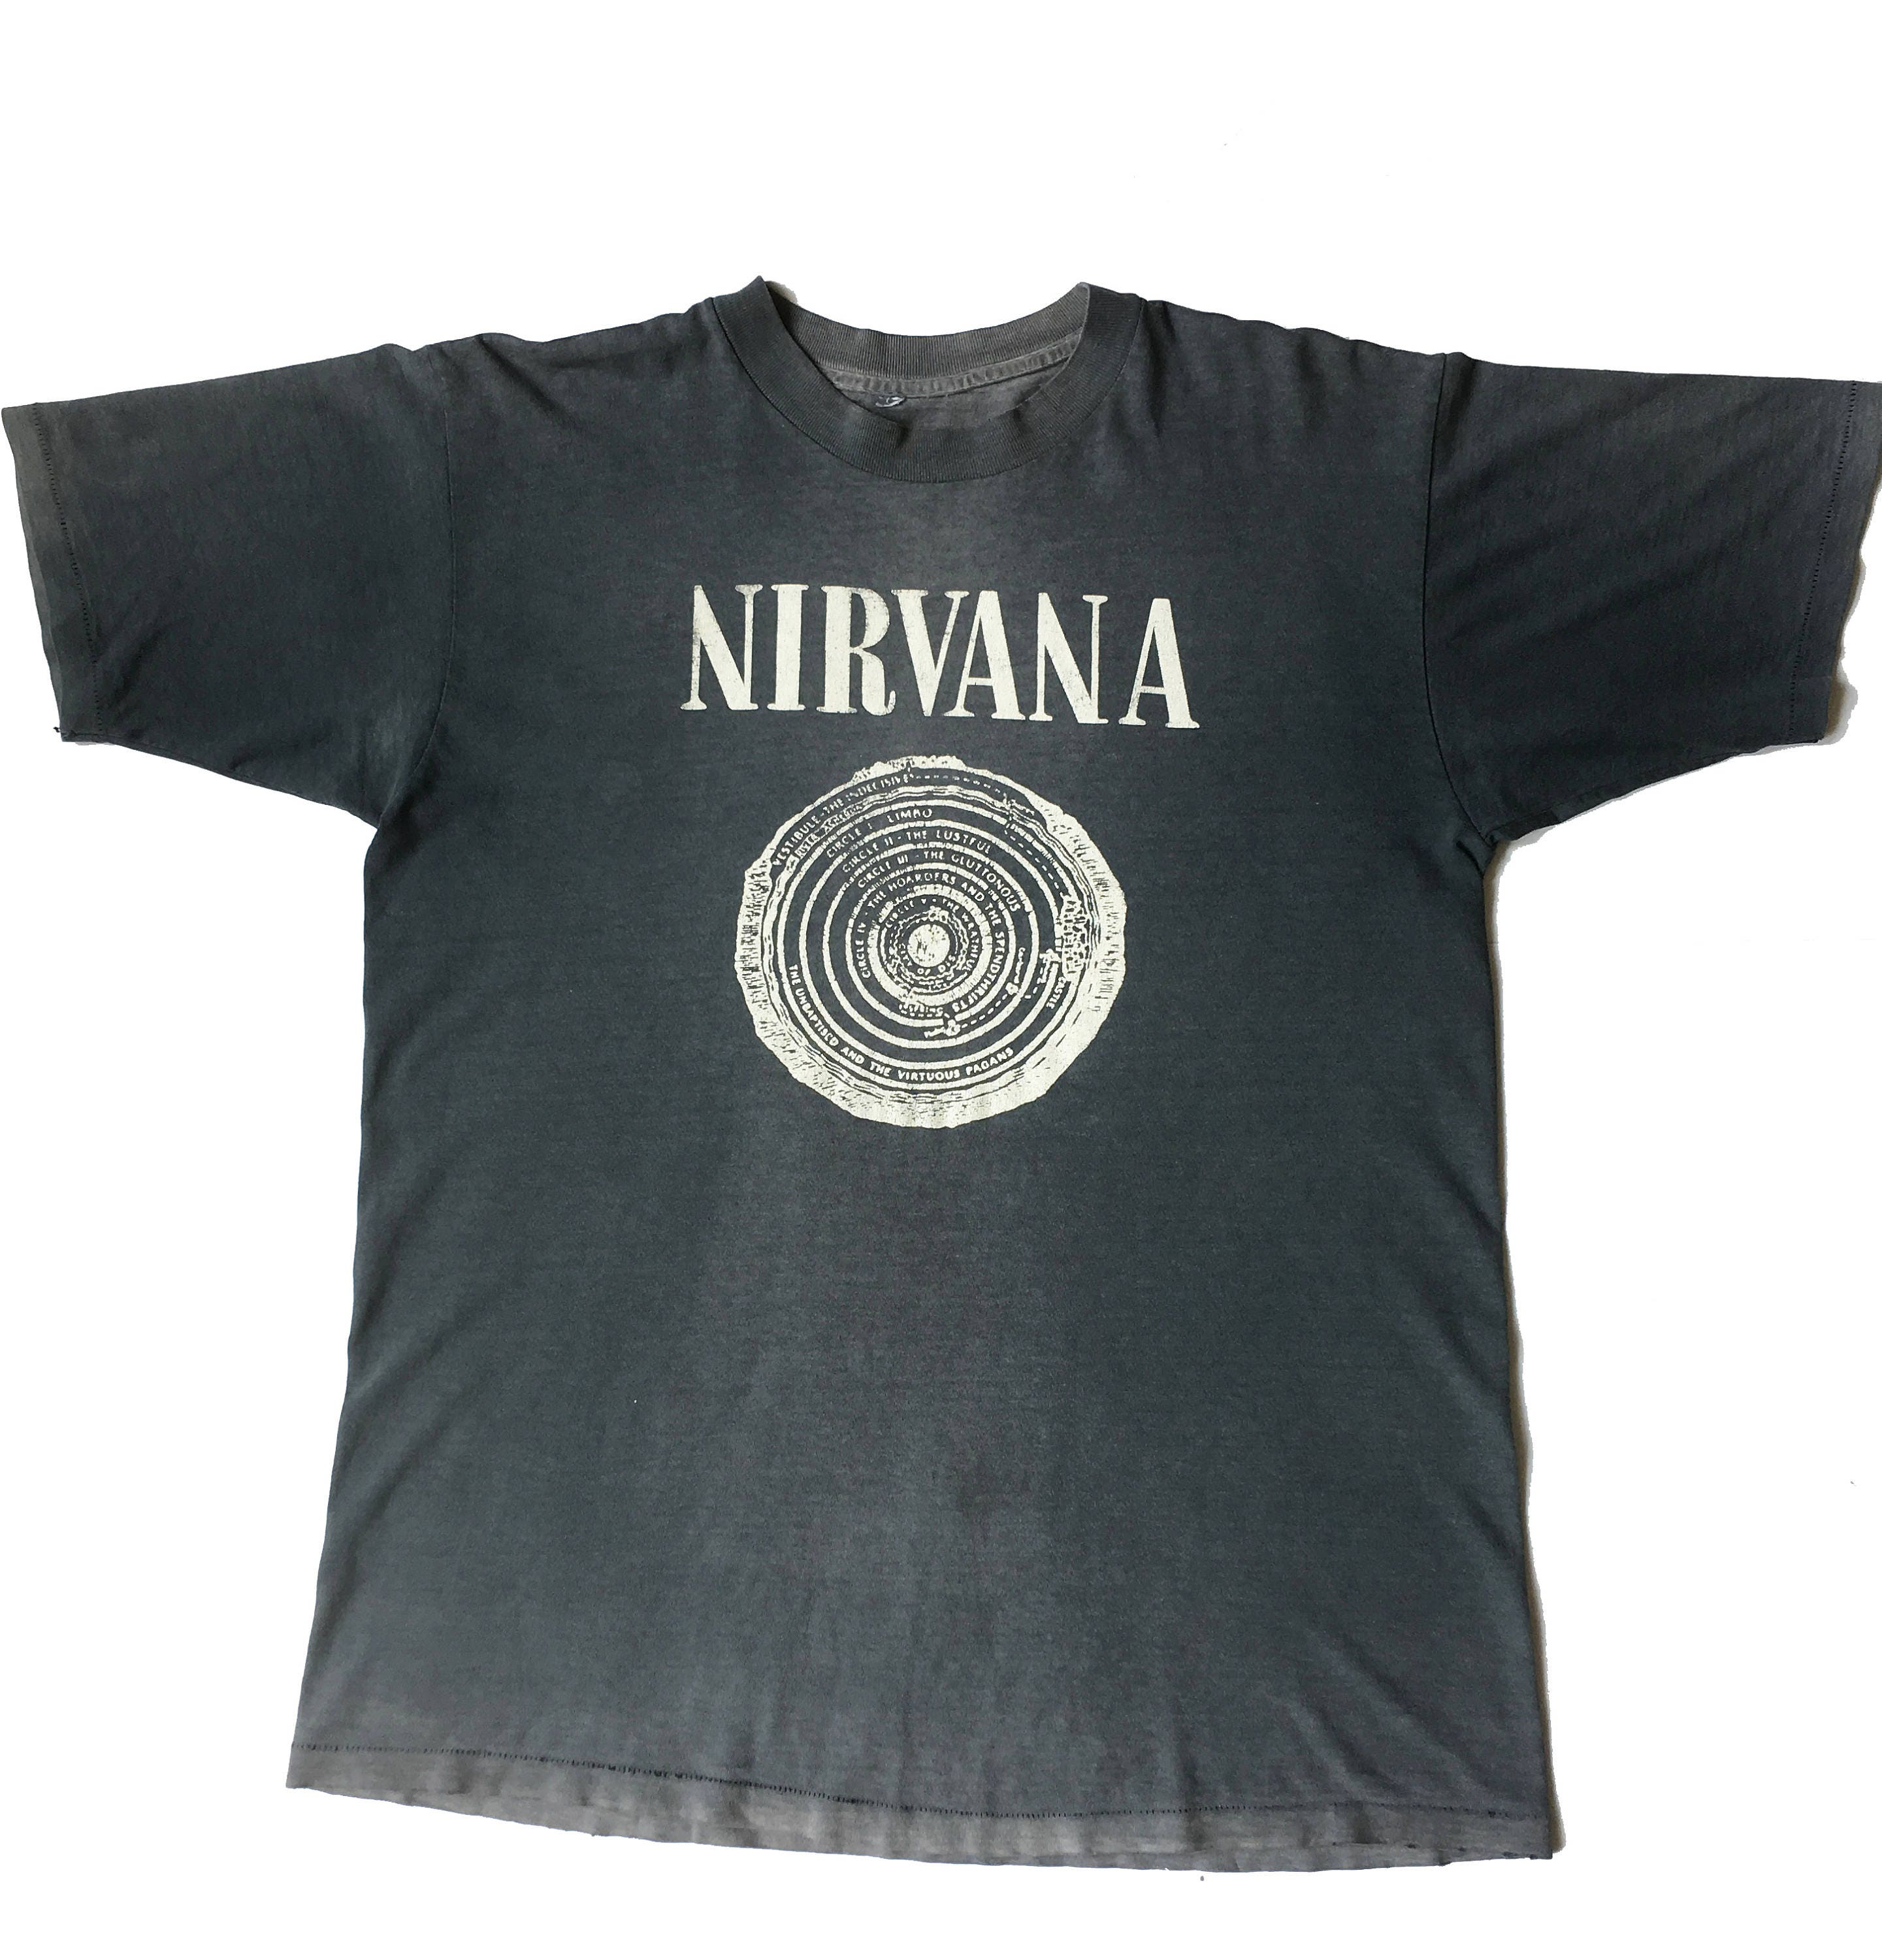 vintage nirvana t shirt. Black Bedroom Furniture Sets. Home Design Ideas